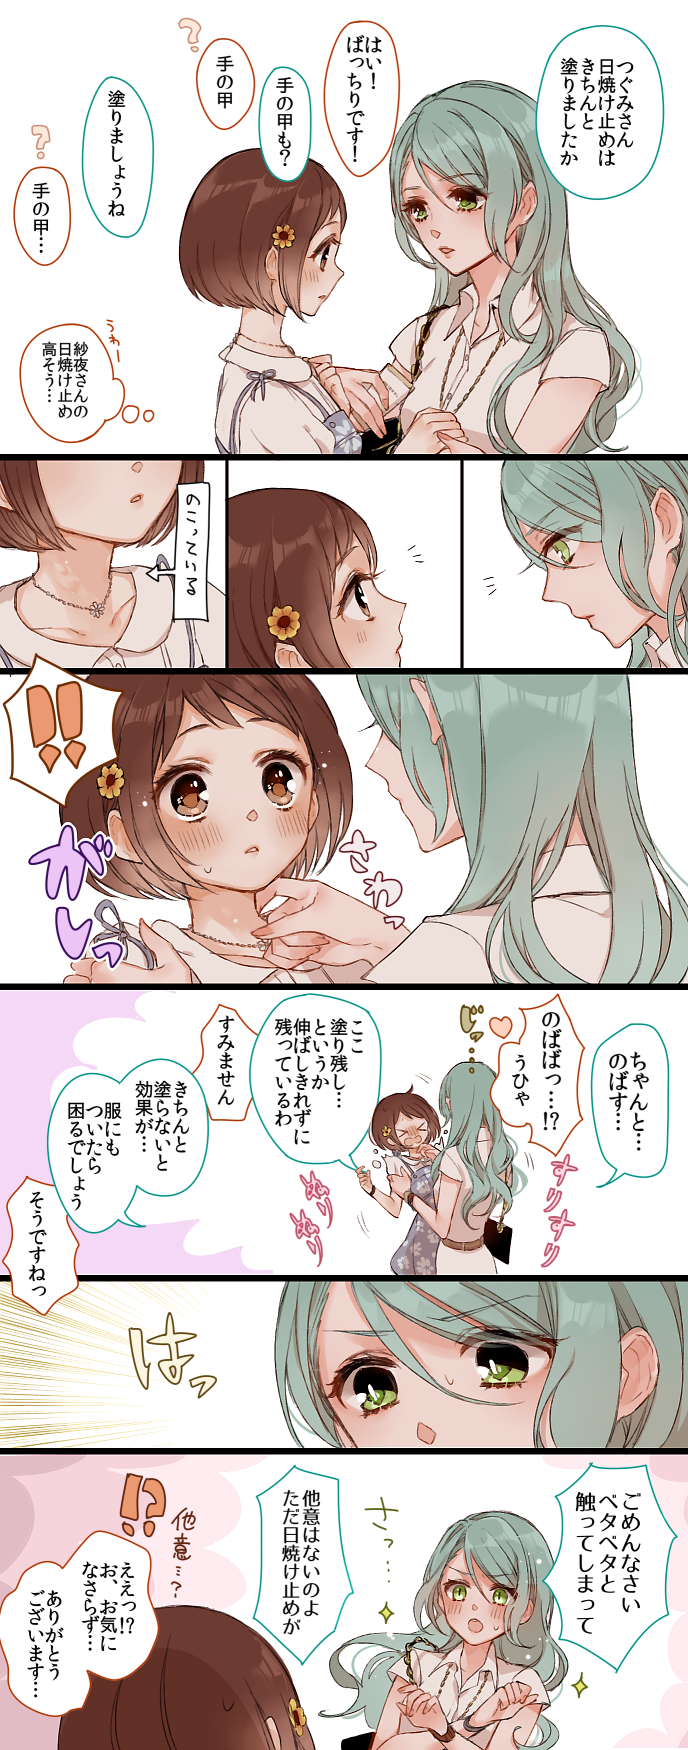 !! !? >_< 2girls :o ? aqua_hair bang_dream! bangs belt blush brown_eyes brown_hair chino_machiko collarbone collared_shirt comic dress face-to-face floral_print flower flustered green_eyes hair_flower hair_ornament hand_on_another's_neck hazawa_tsugumi heart highres hikawa_sayo jewelry long_hair looking_at_another multiple_girls necklace notice_lines parted_lips pinafore_dress print_dress shirt short_hair short_sleeves sparkle sweatdrop translation_request v-shaped_eyebrows wavy_mouth white_shirt x_arms yuri